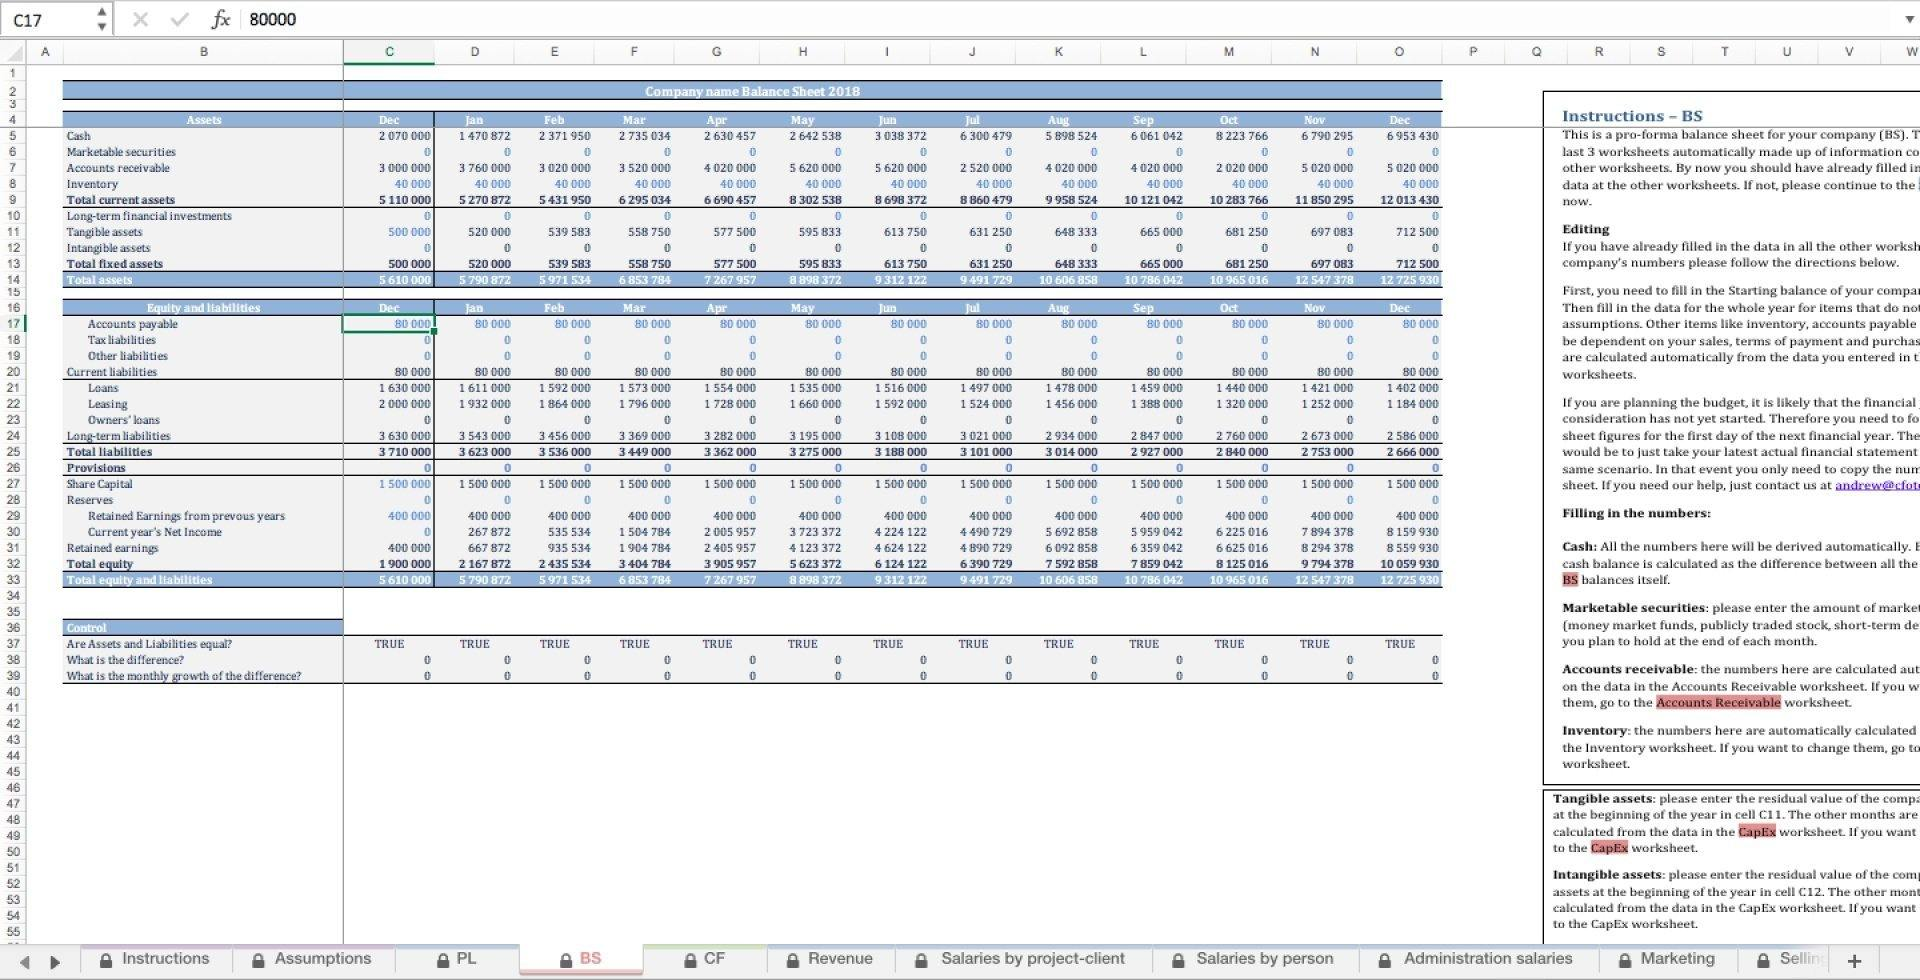 Professional Services Budget Excel Template - Templarket -  Business Templates Marketplace